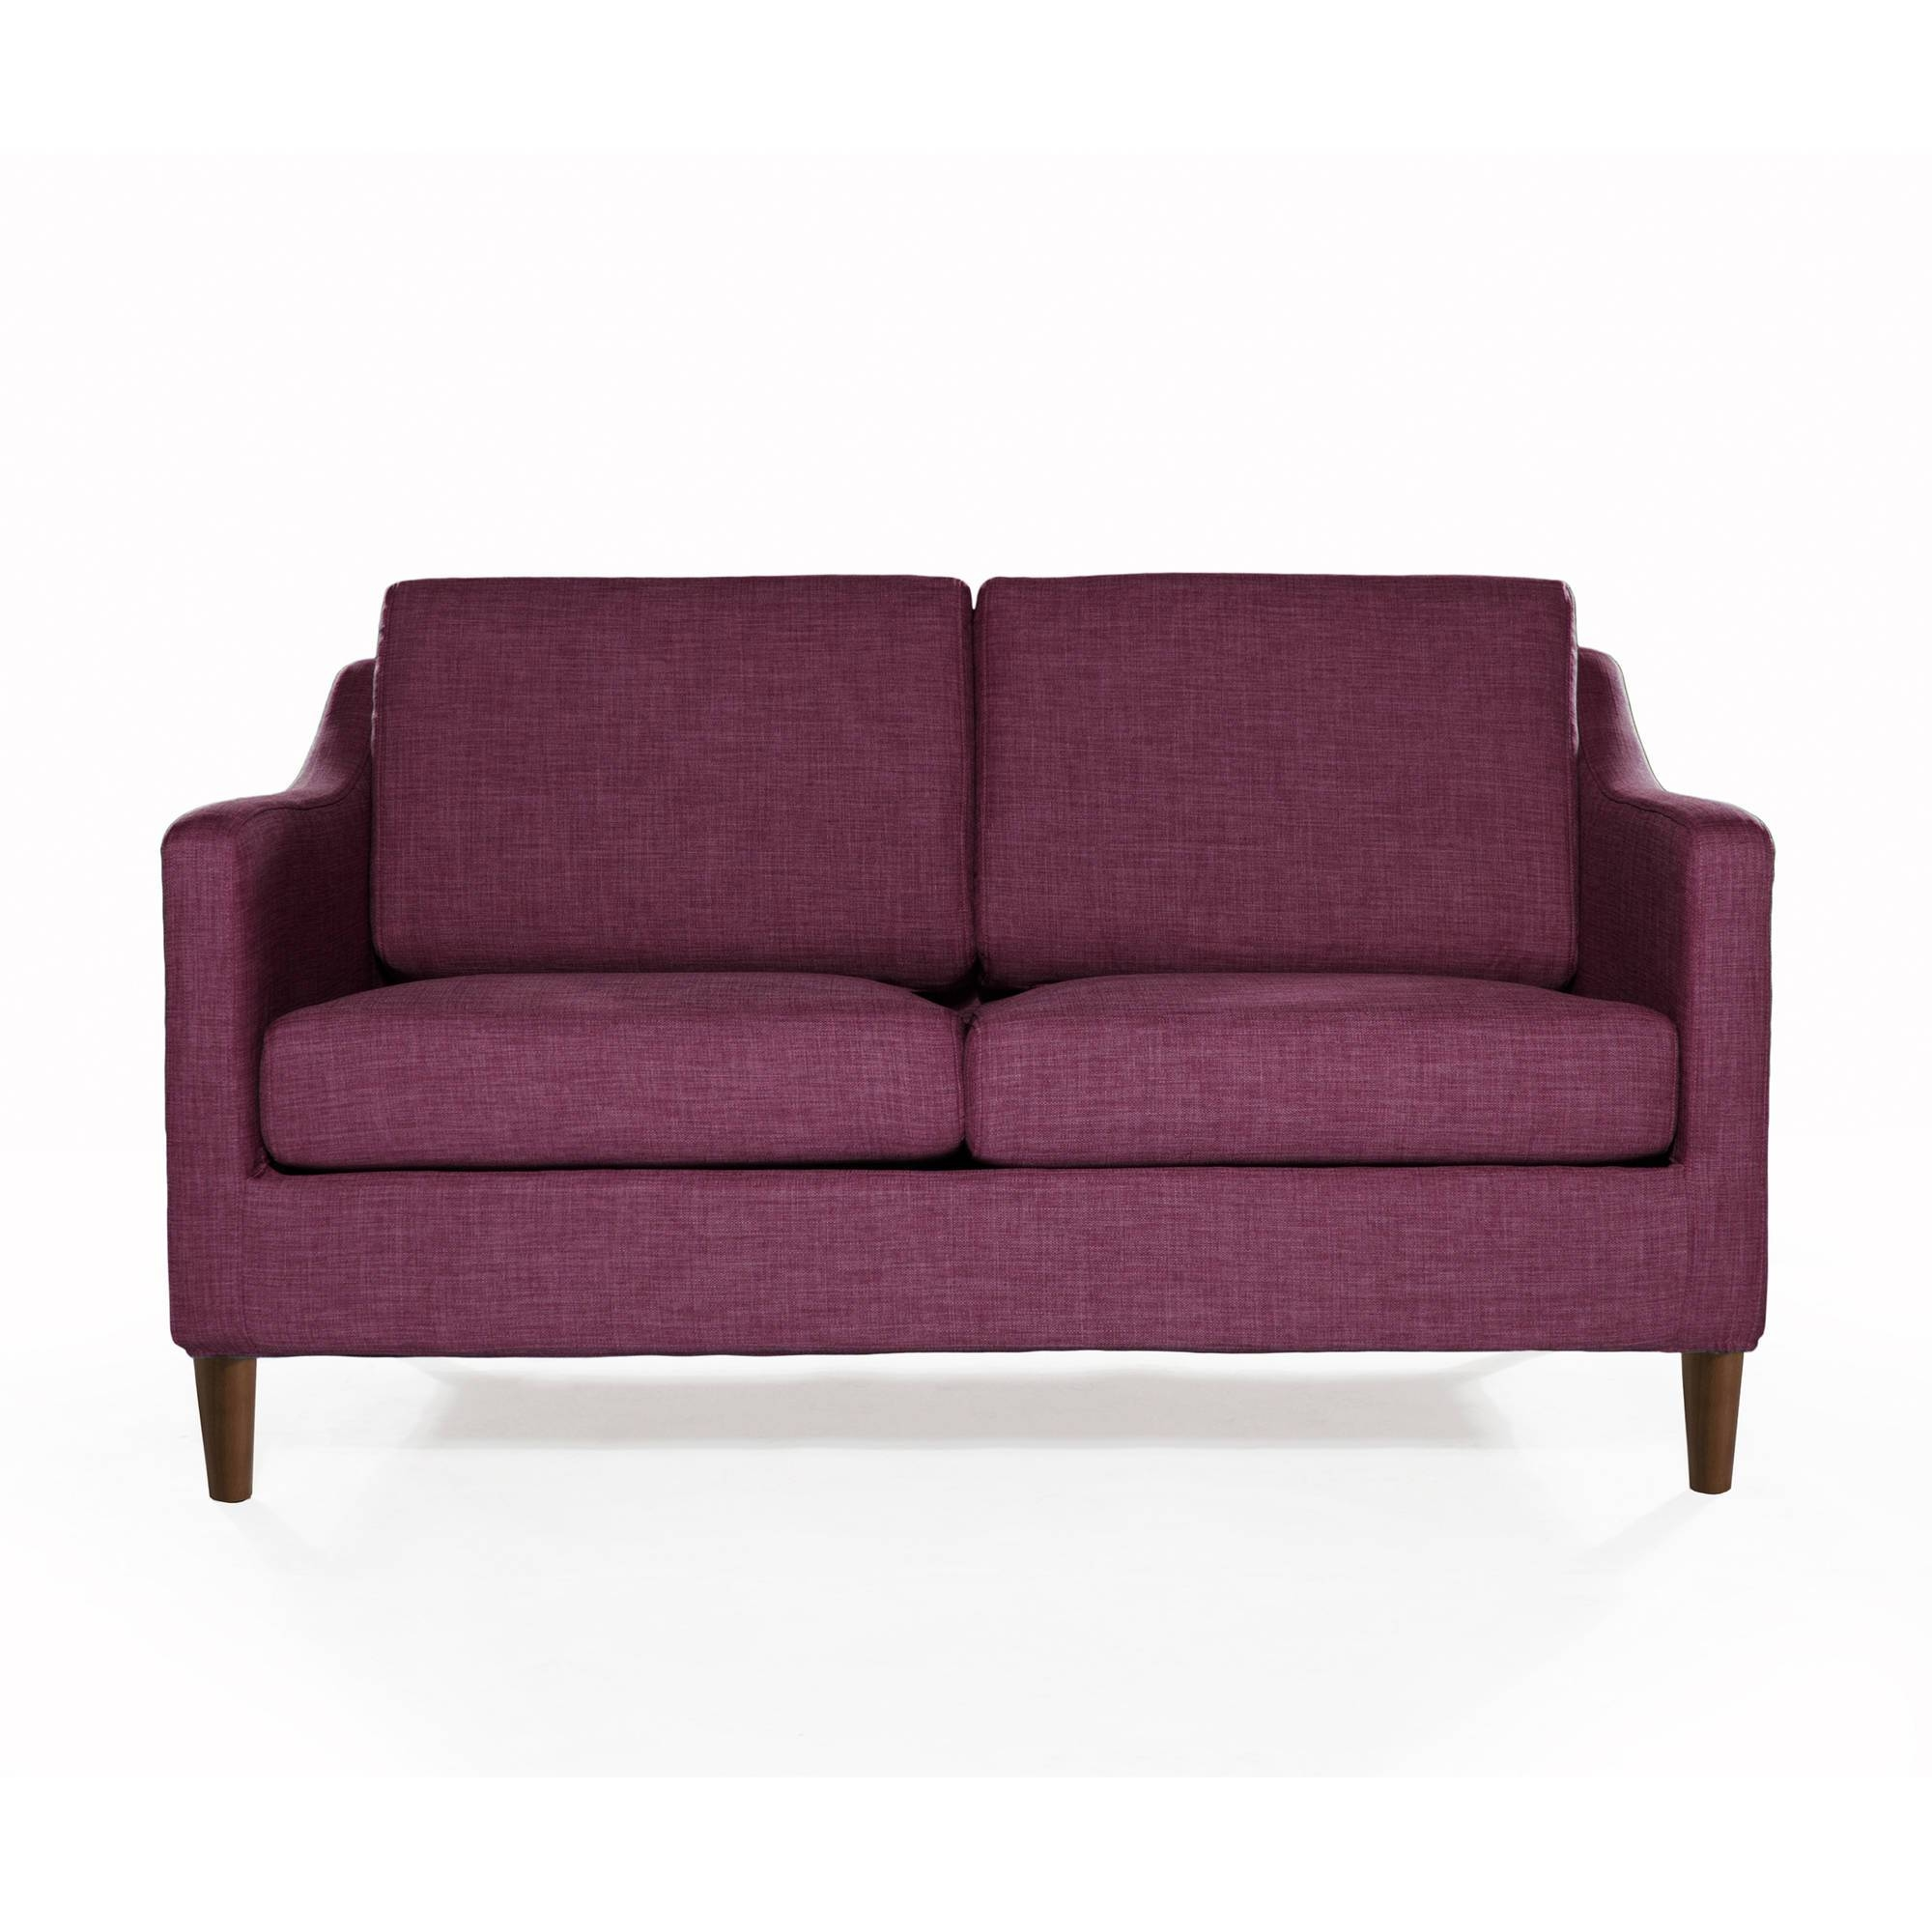 Sofas & Couches – Walmart For Sofas And Loveseats (View 19 of 30)